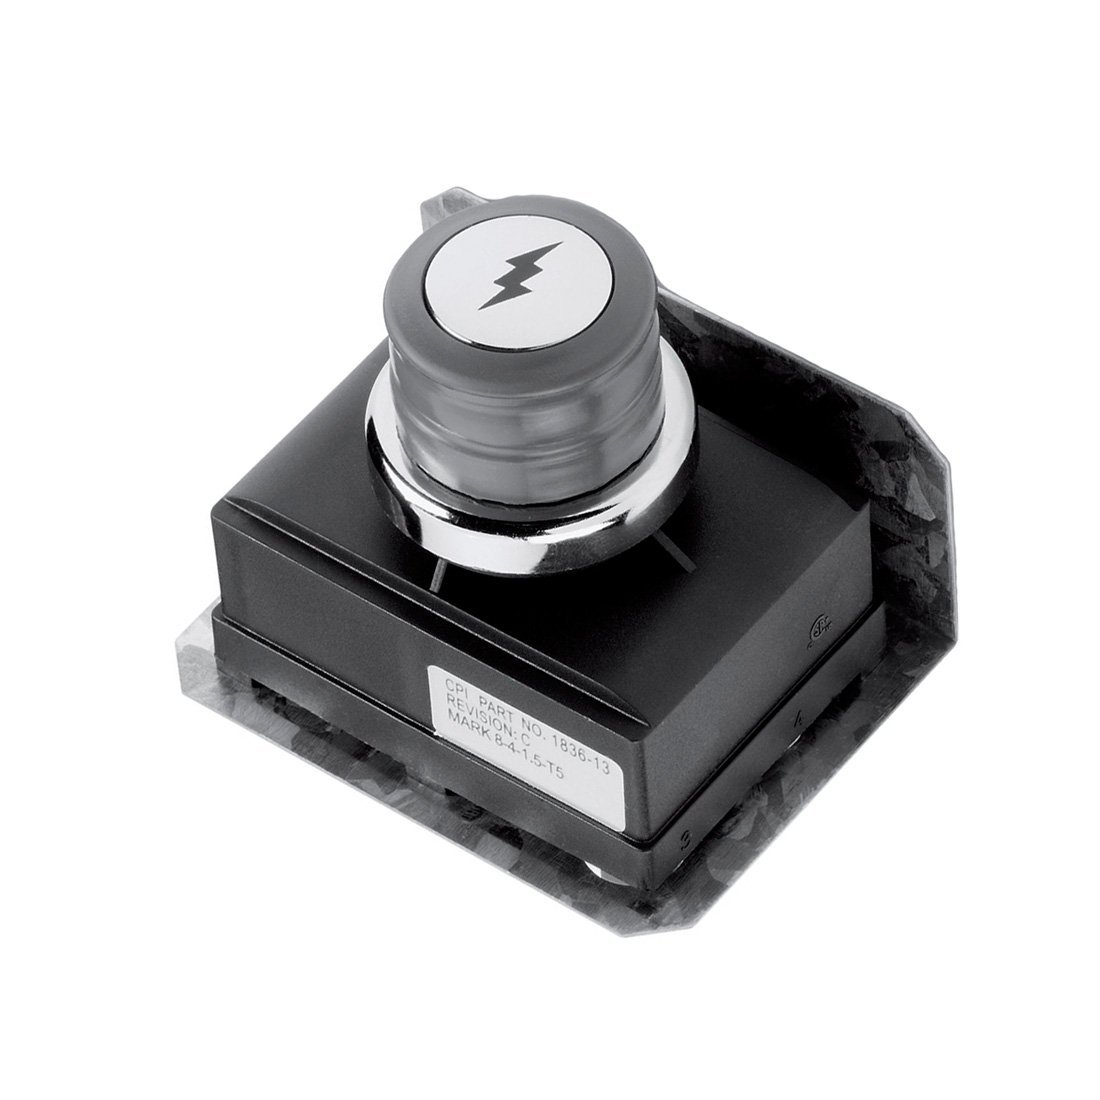 BBQ funland SG3341 4 outlets Spark Generator Replacement for Select Weber Gas Grill Models